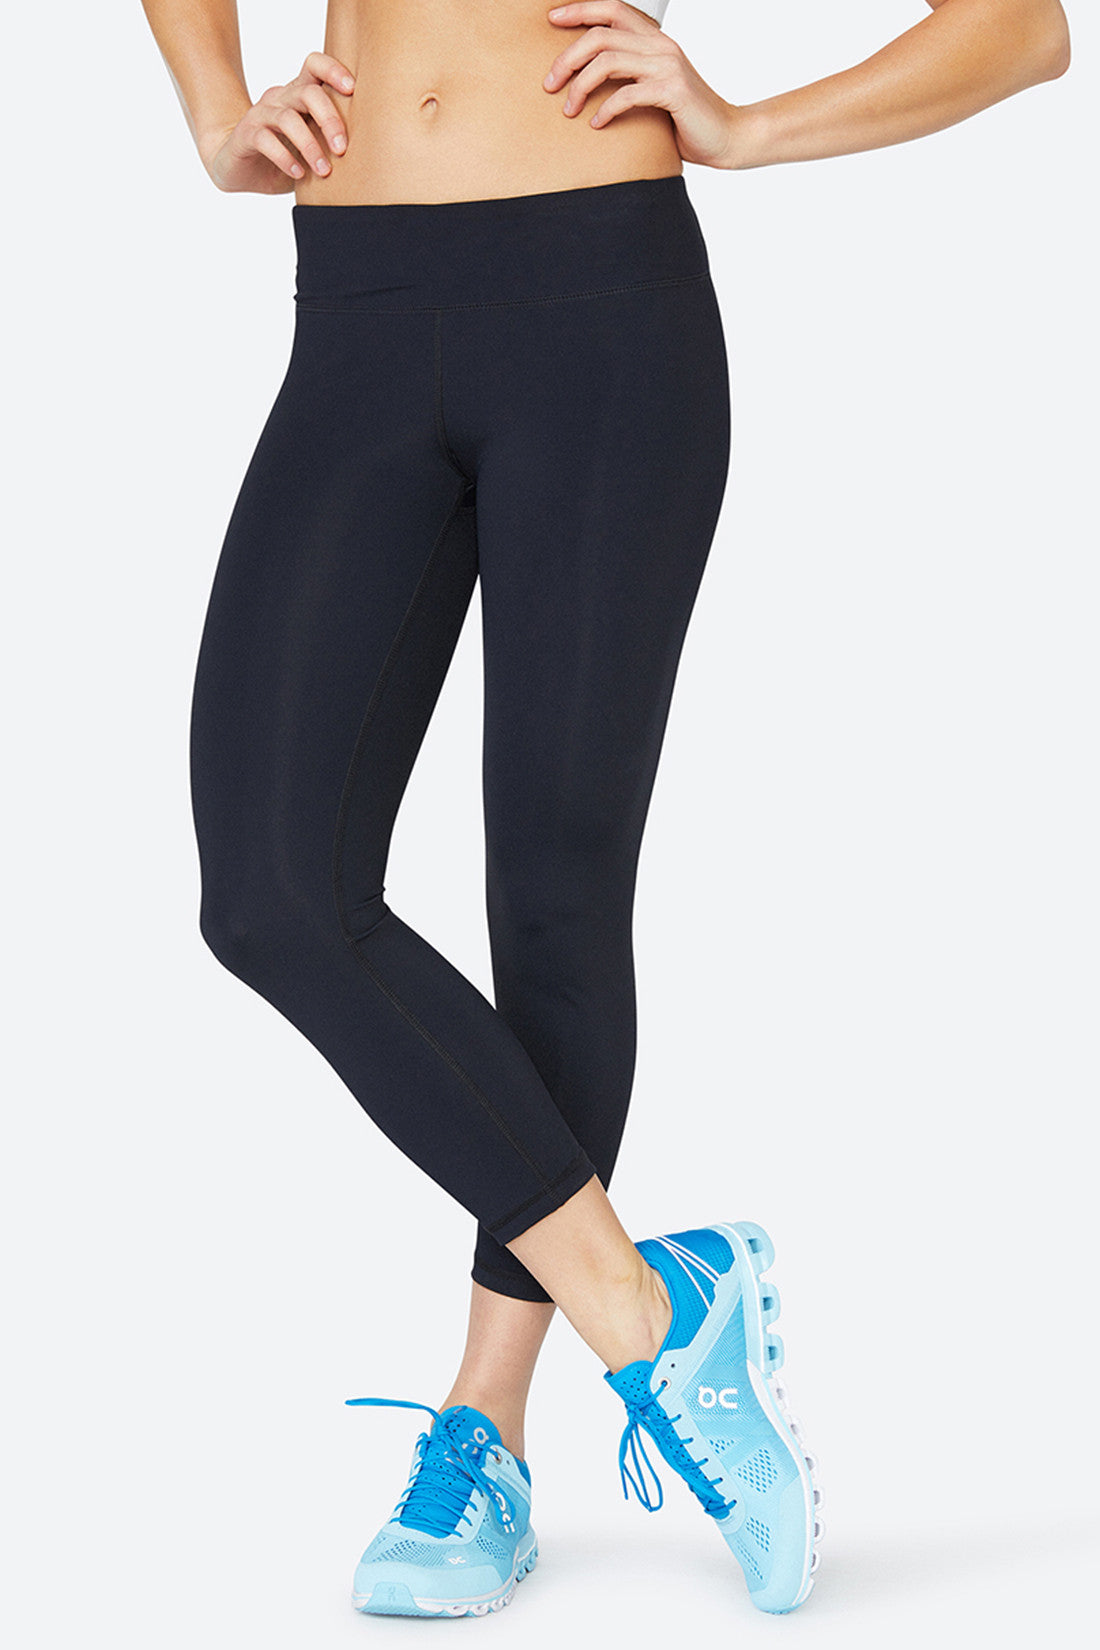 Marianne Tight - Alpha-tech Lush - Black Brushed